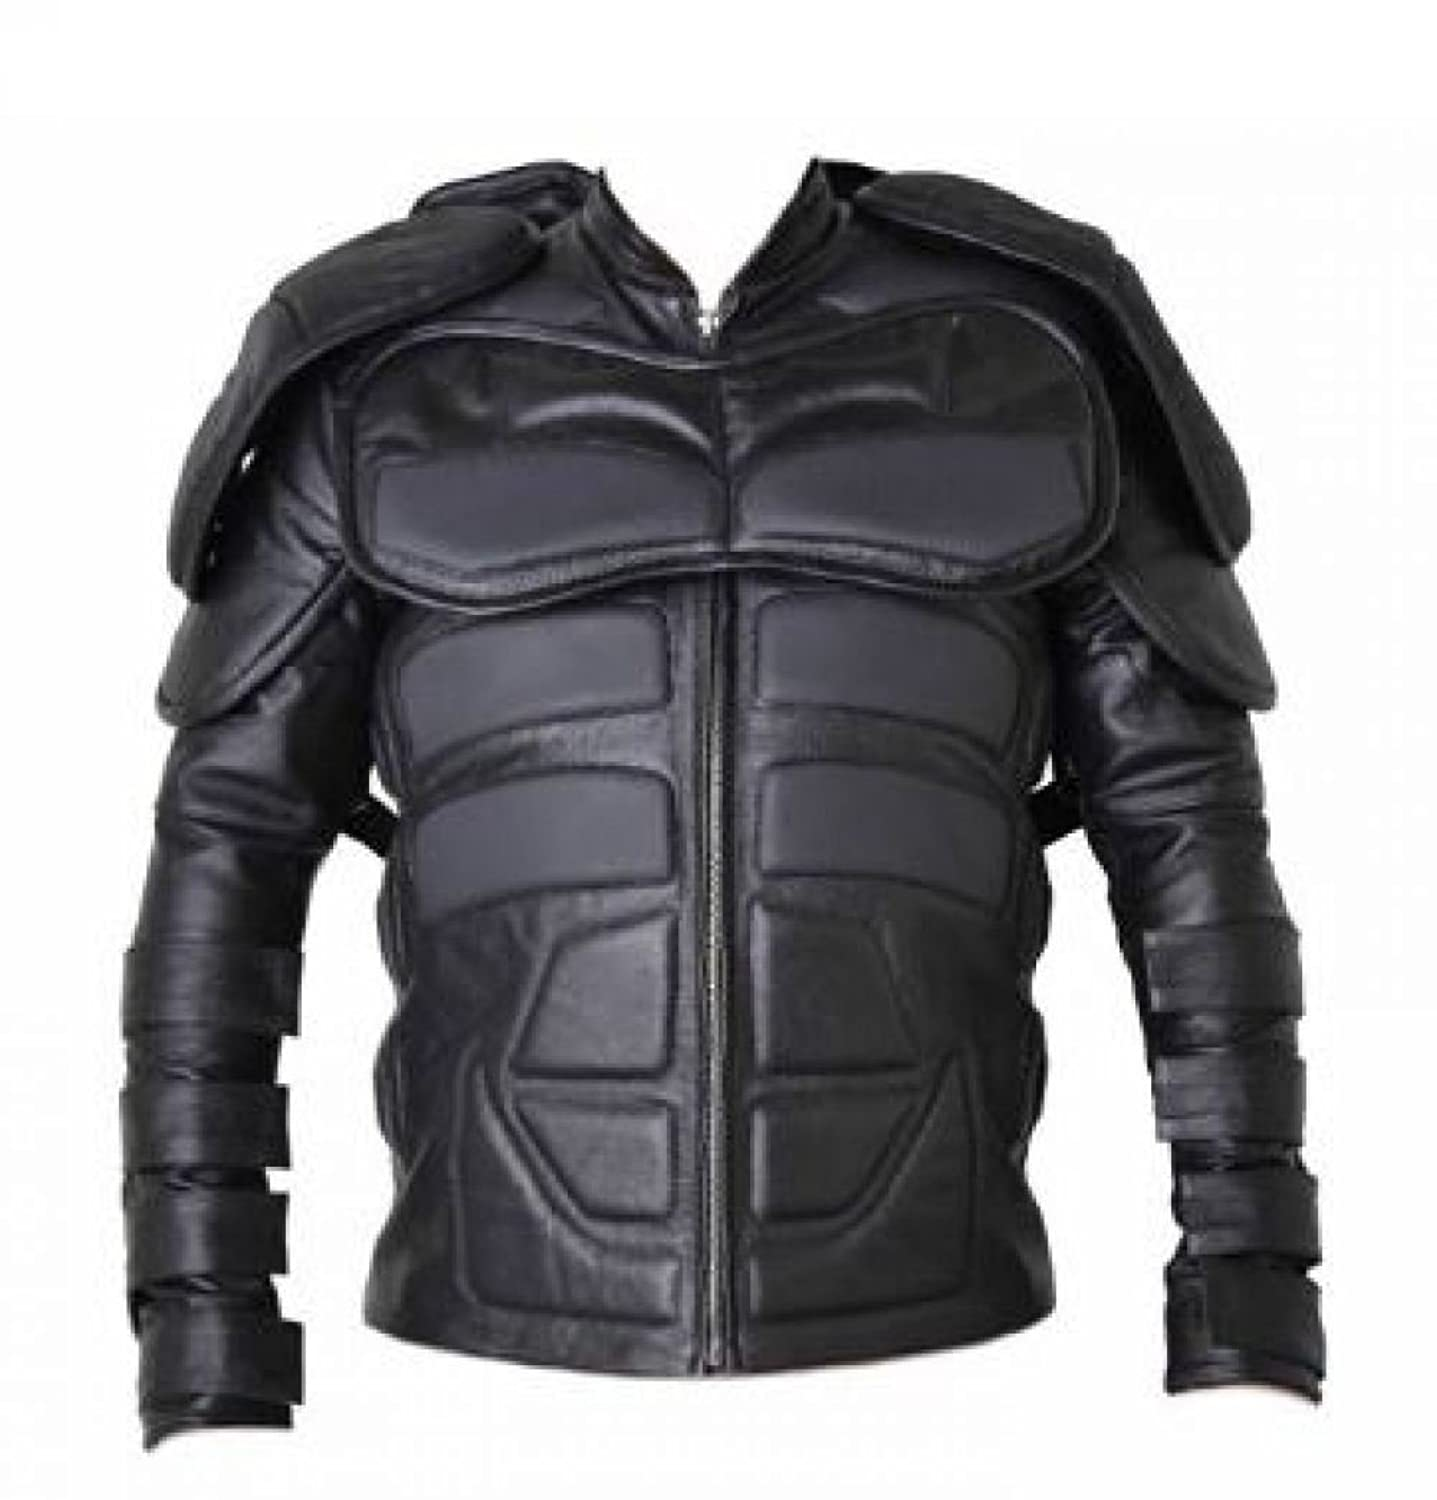 Celebrita X Bat man Dark Knight Leather Jacket